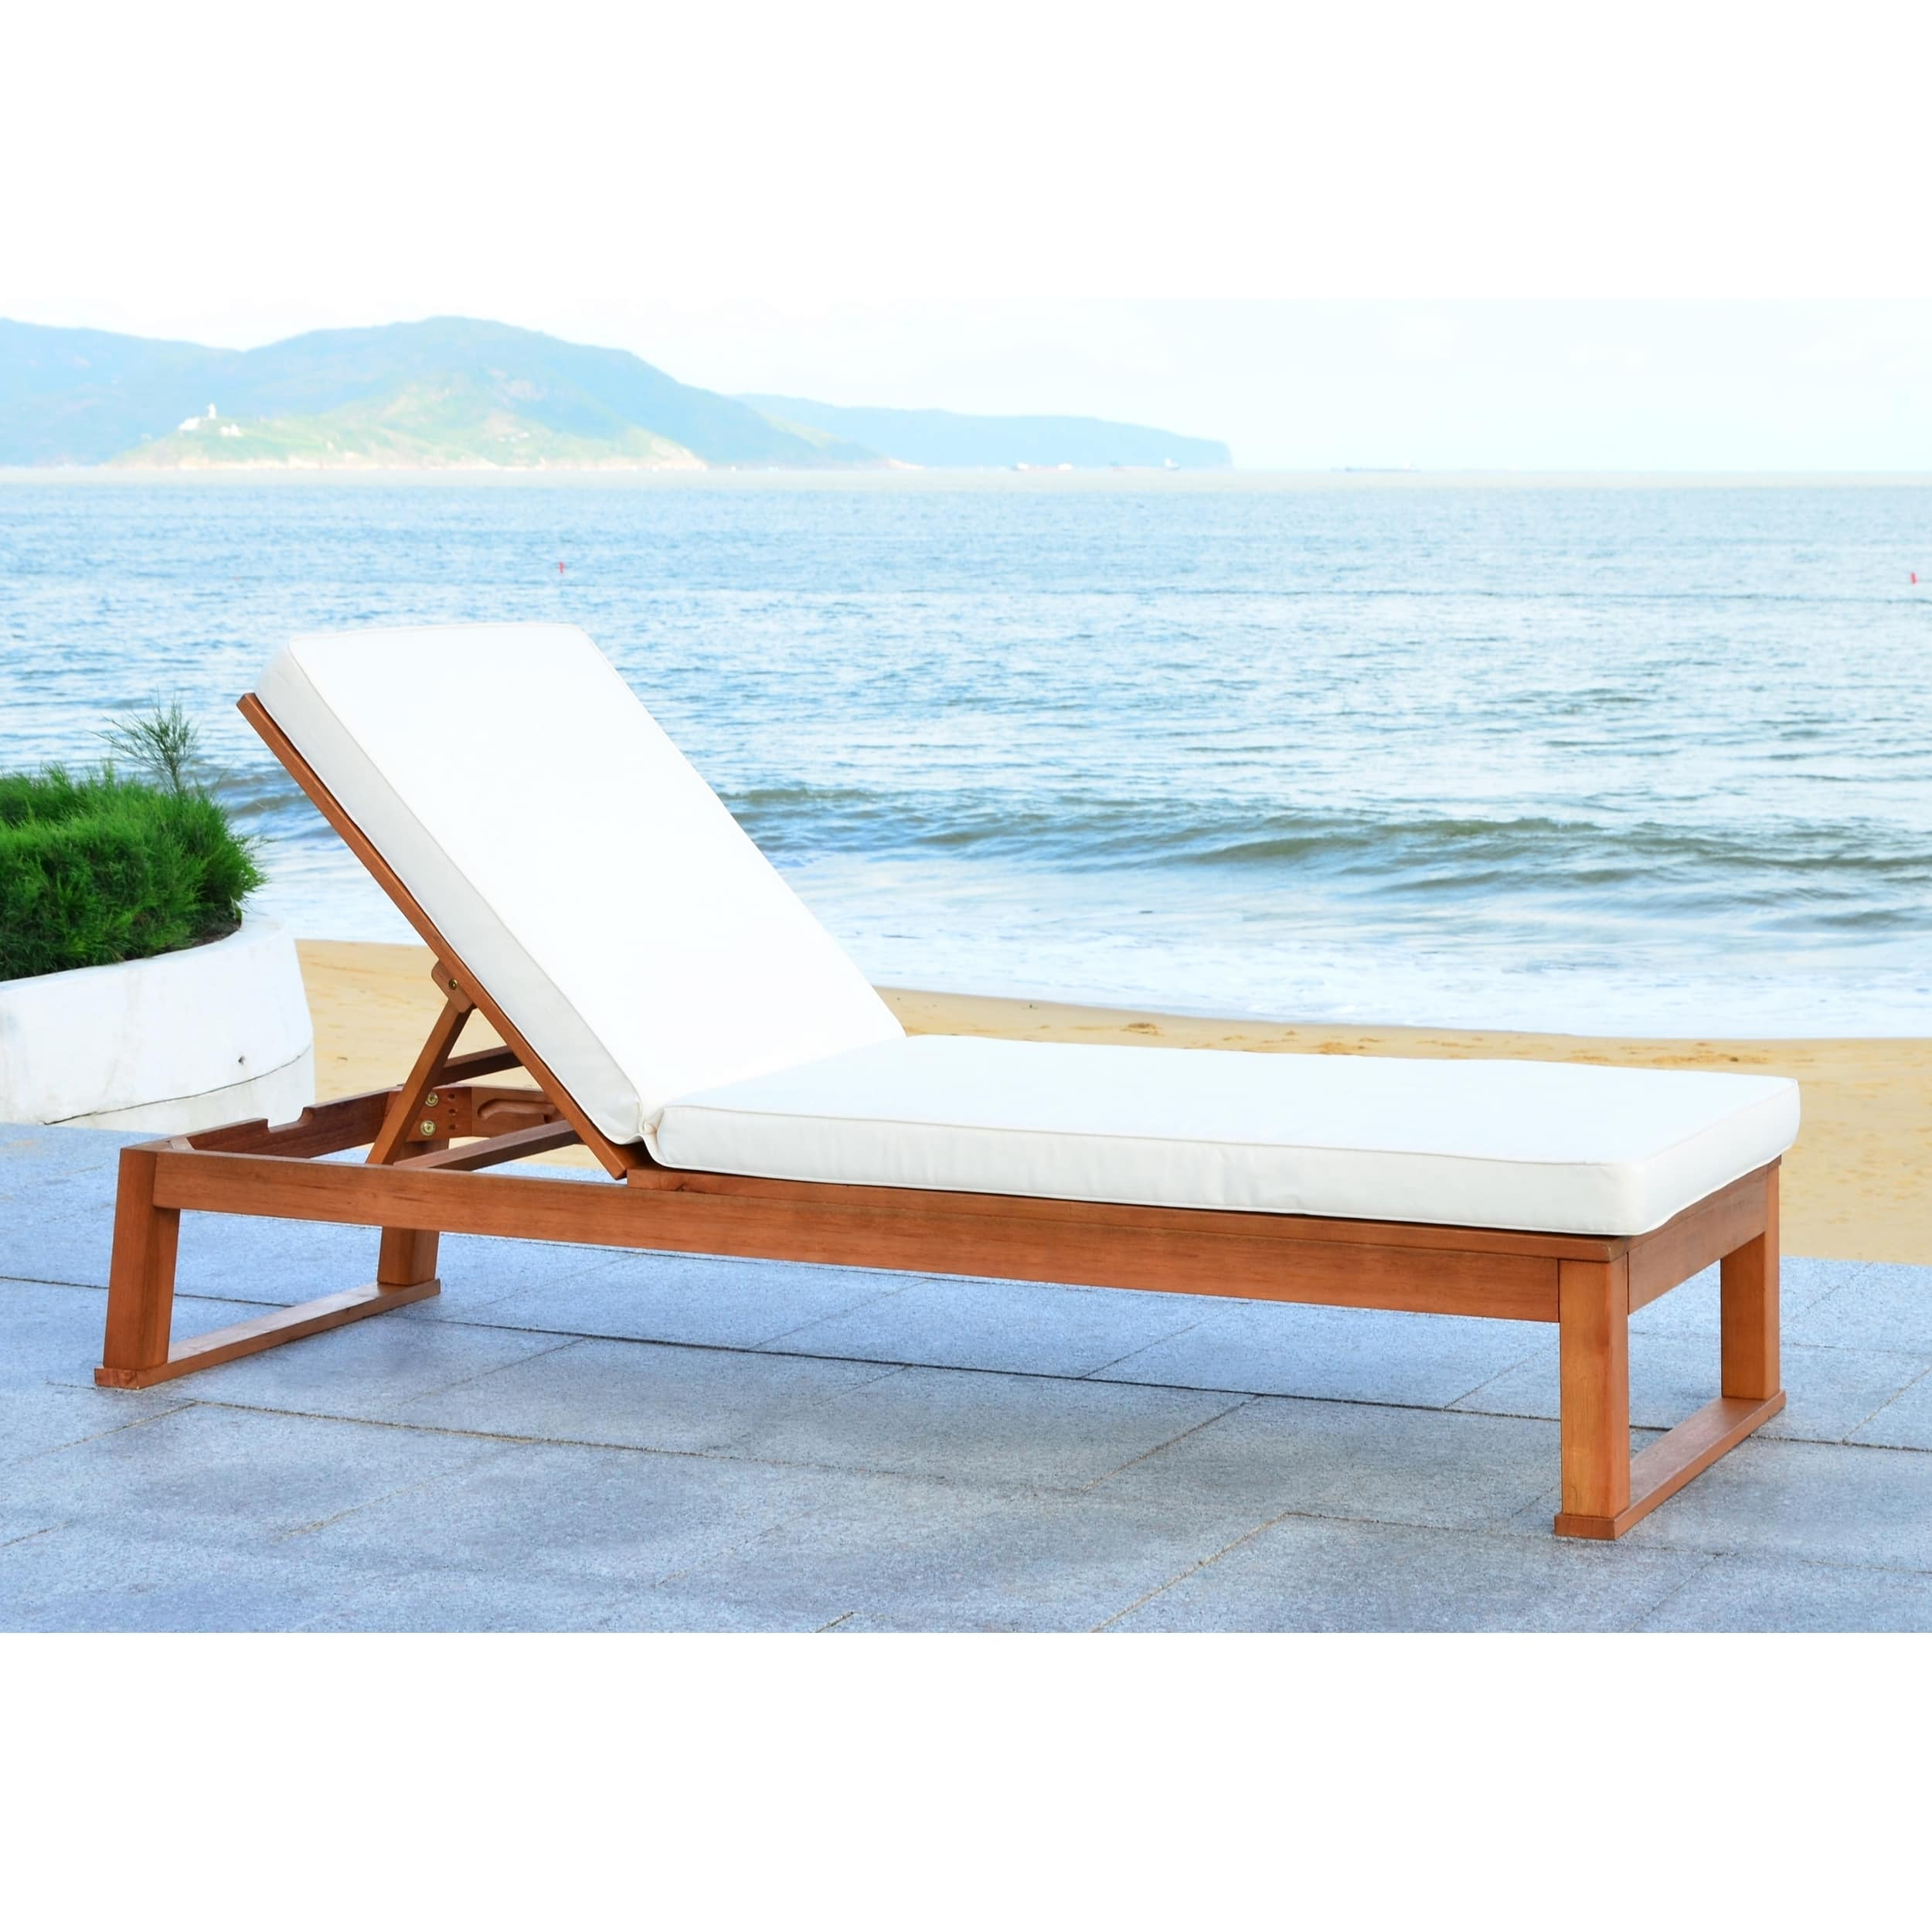 Buy Outdoor Chaise Lounges Online at Overstock | Our Best ... on Safavieh Outdoor Living Solano Sunlounger id=27862